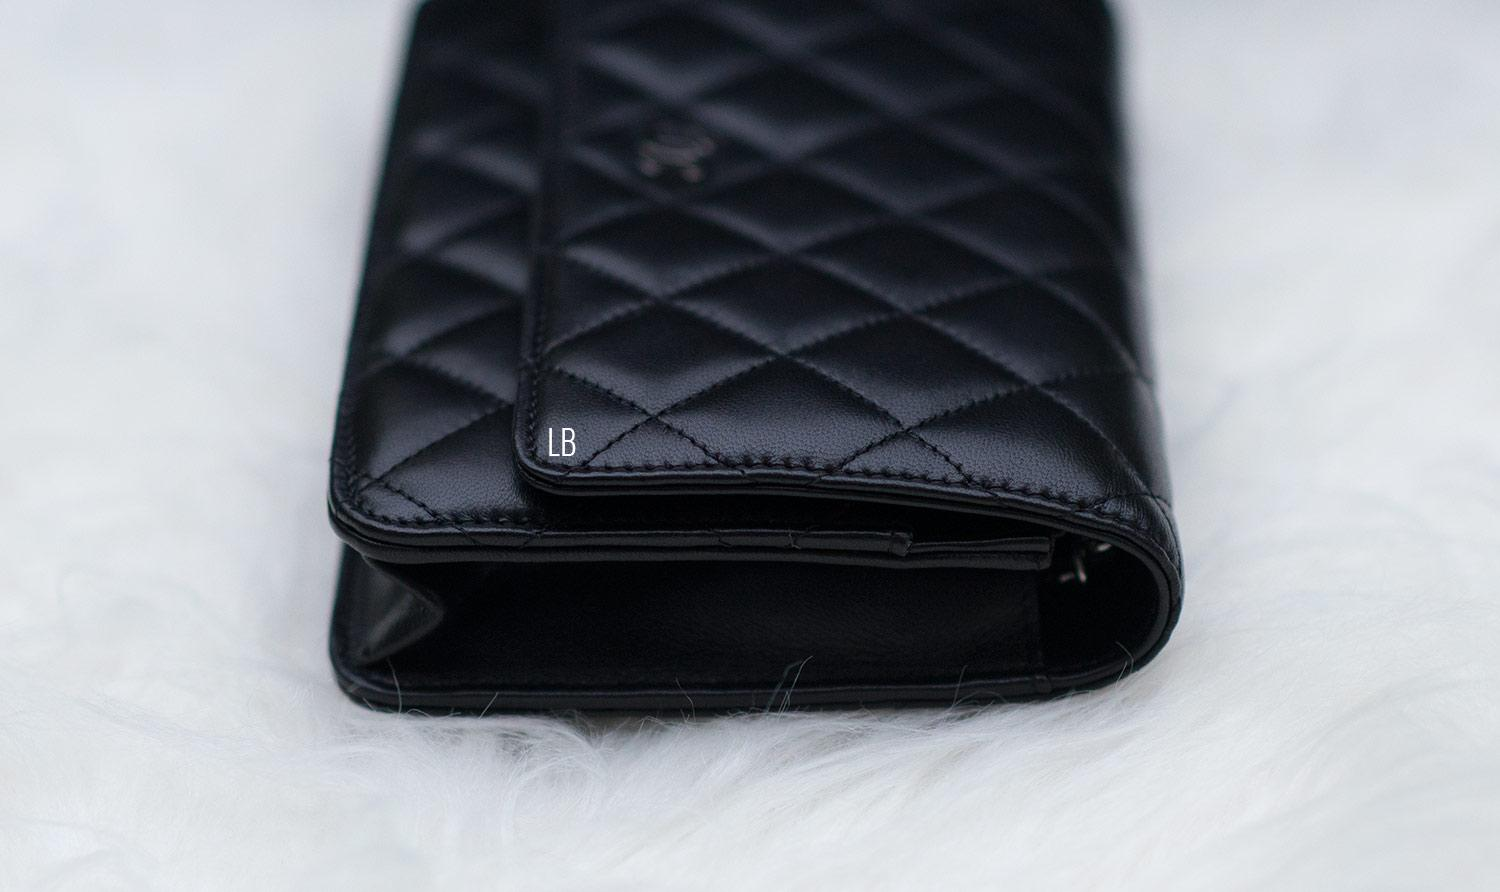 chanel-woc-wallet-on-chain-black-leather-side